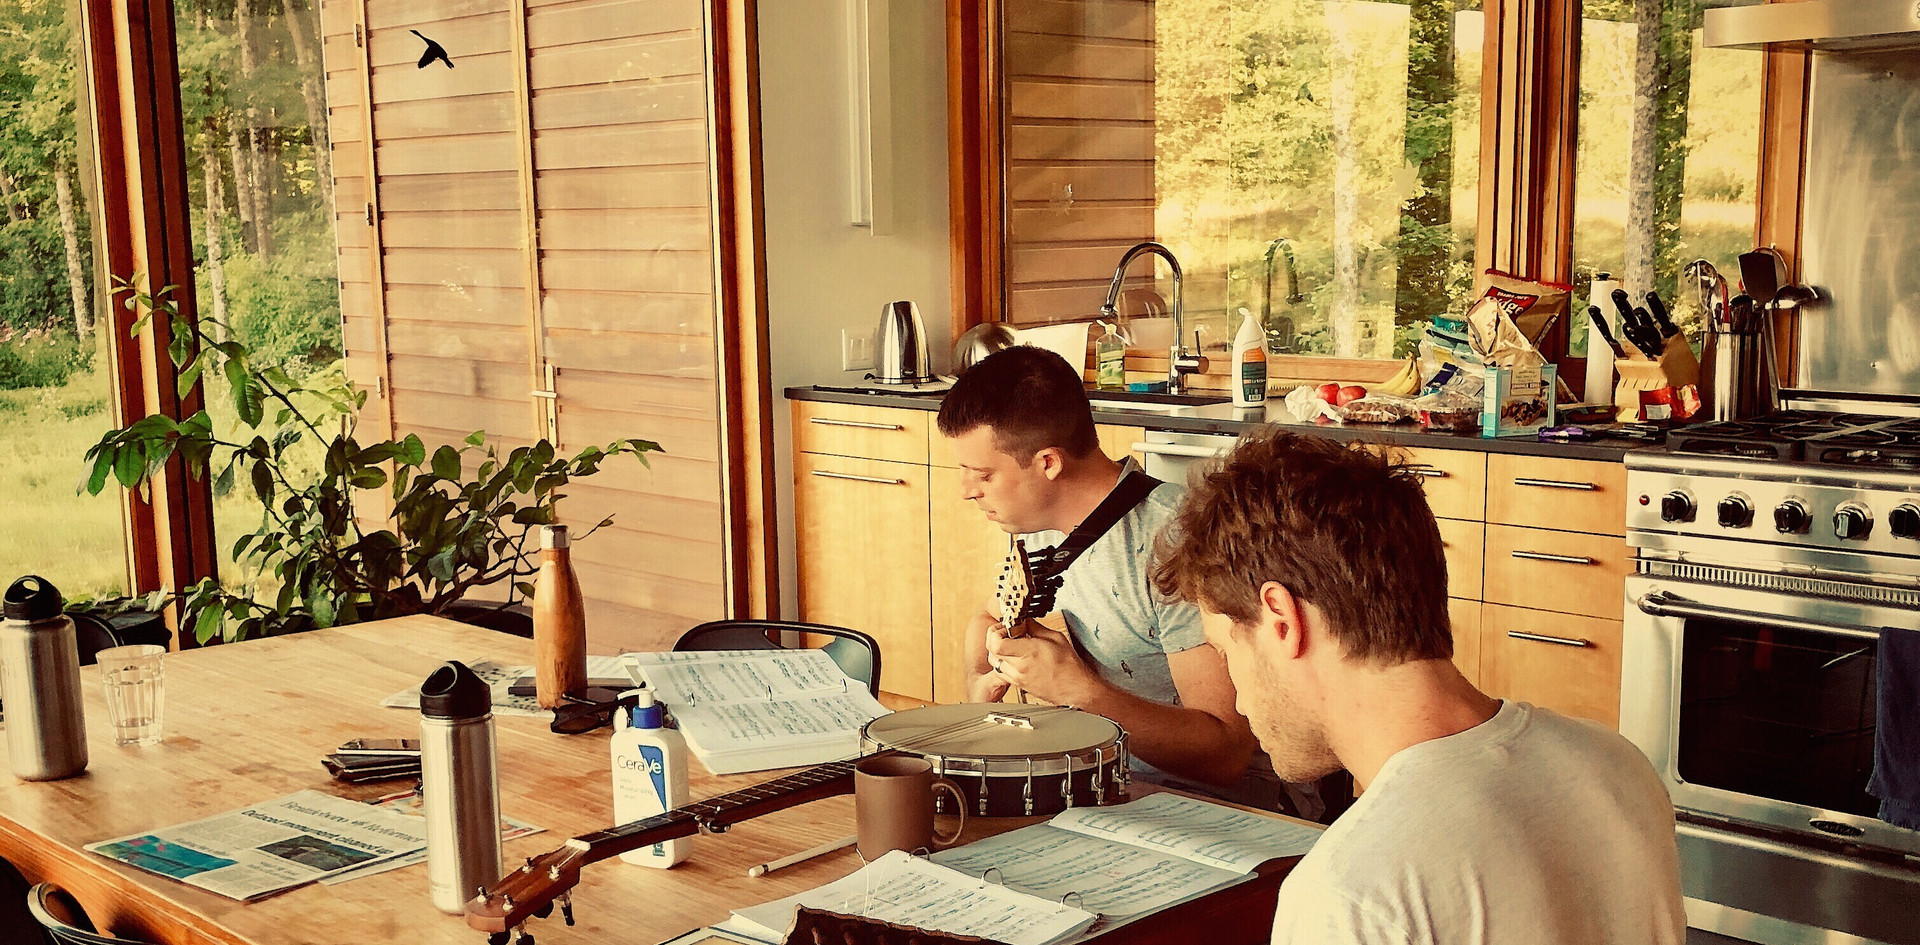 Paul and Adam warming up in the kitchen